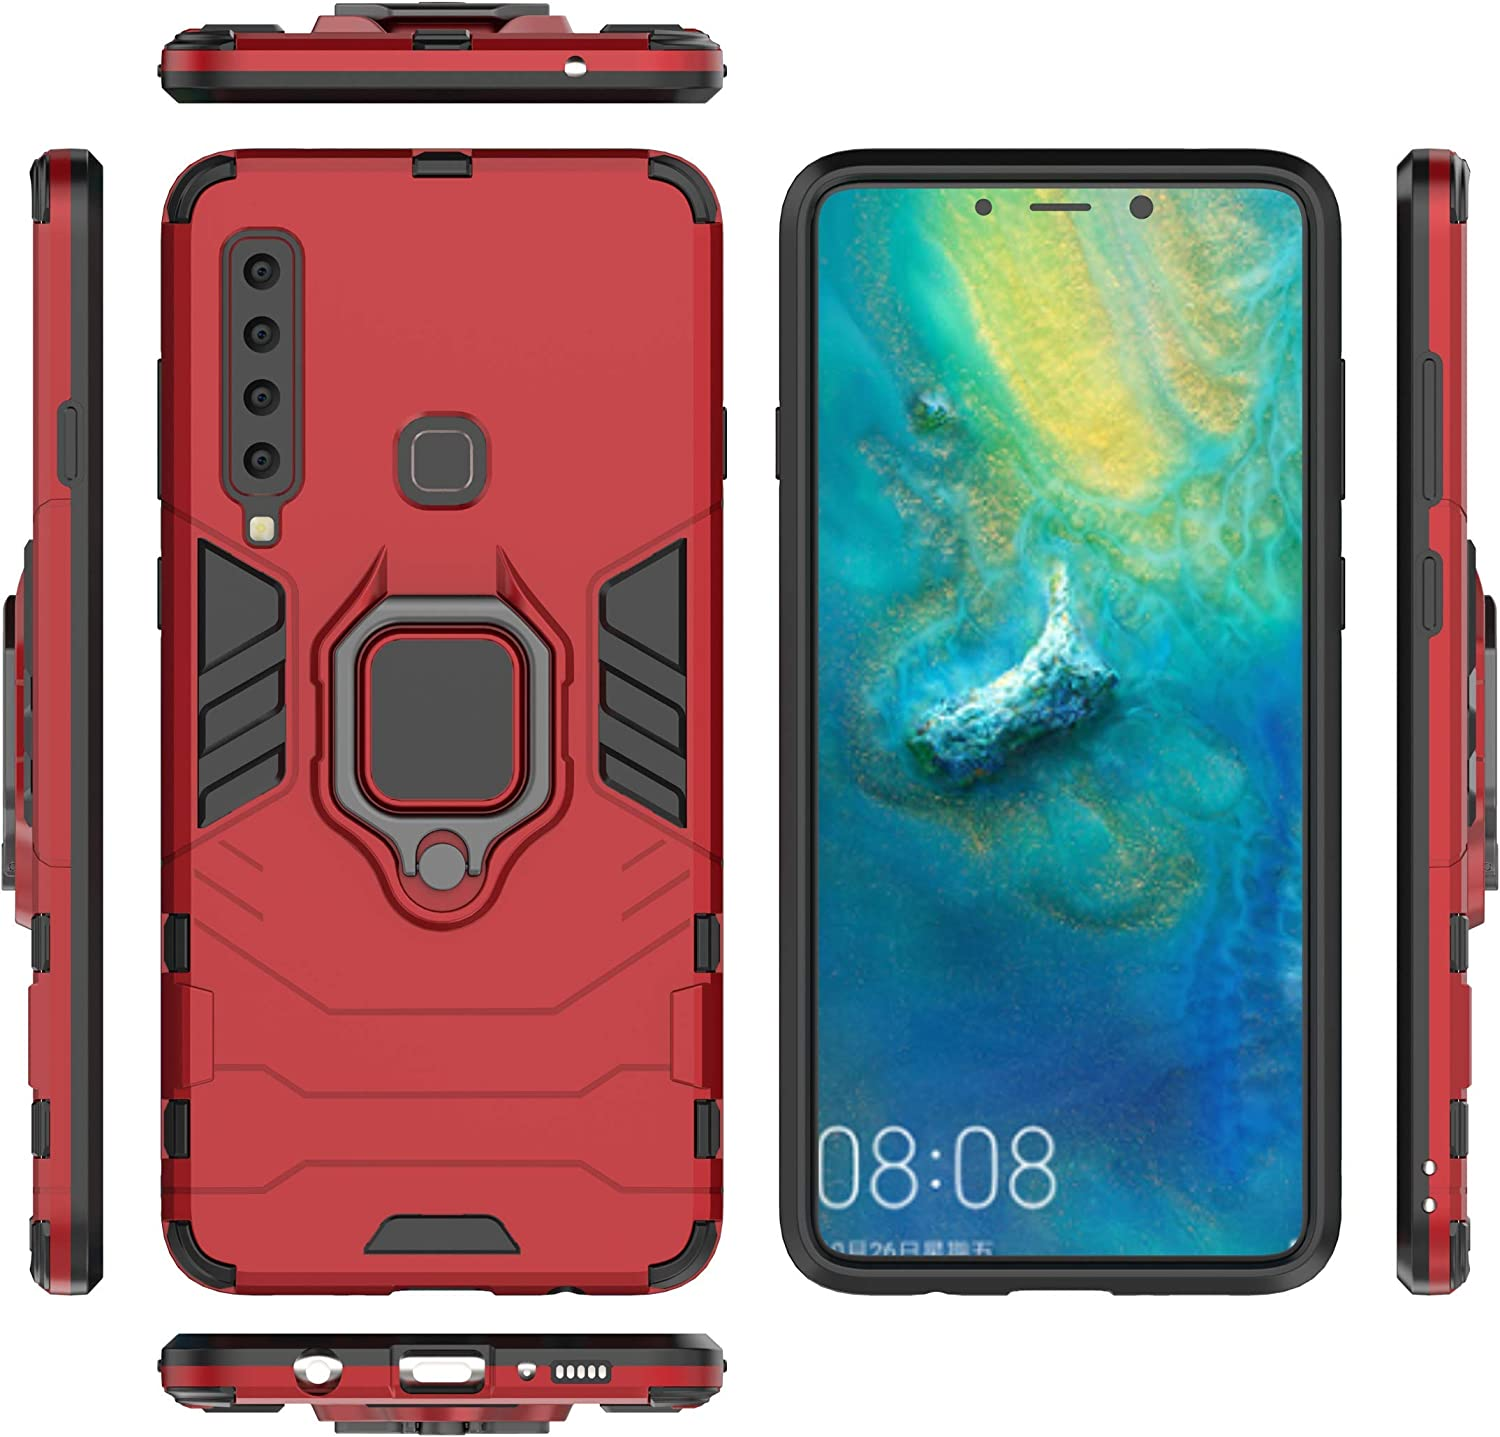 nincyee Bumper Case for Samsung Galaxy A9 2018,Car Magnetic Stand Holder 360 Degree Adjustable Ring Kickstand Cover for Samsung Galaxy A9 2018